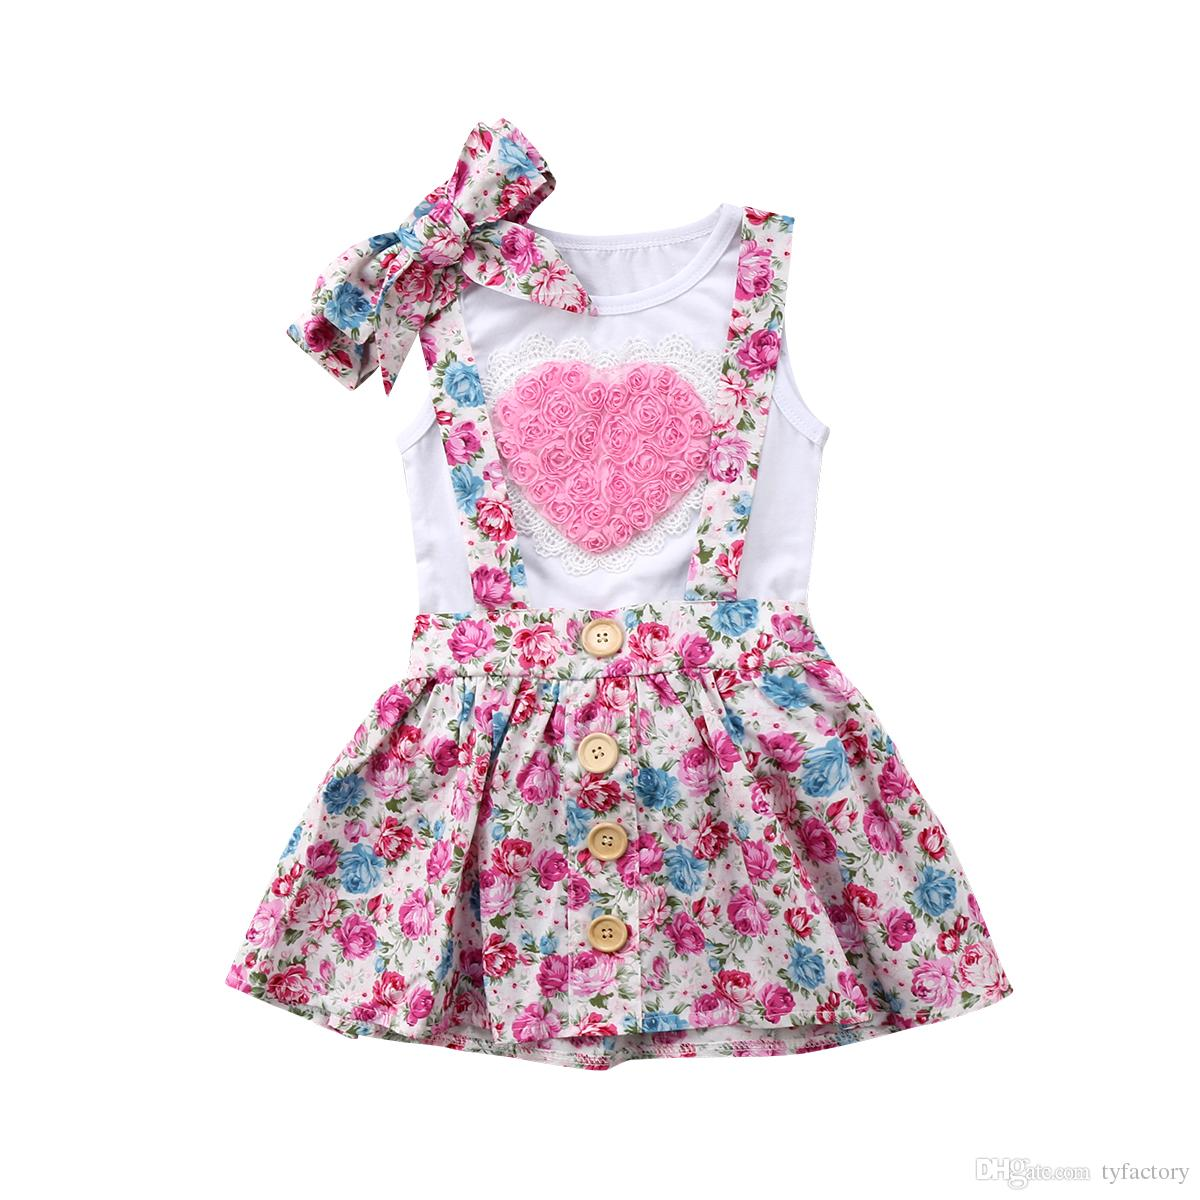 000ab06ffdd7 2019 Floral Kids Baby Girls Overalls Dress Outfits Clothes T Shirt ...